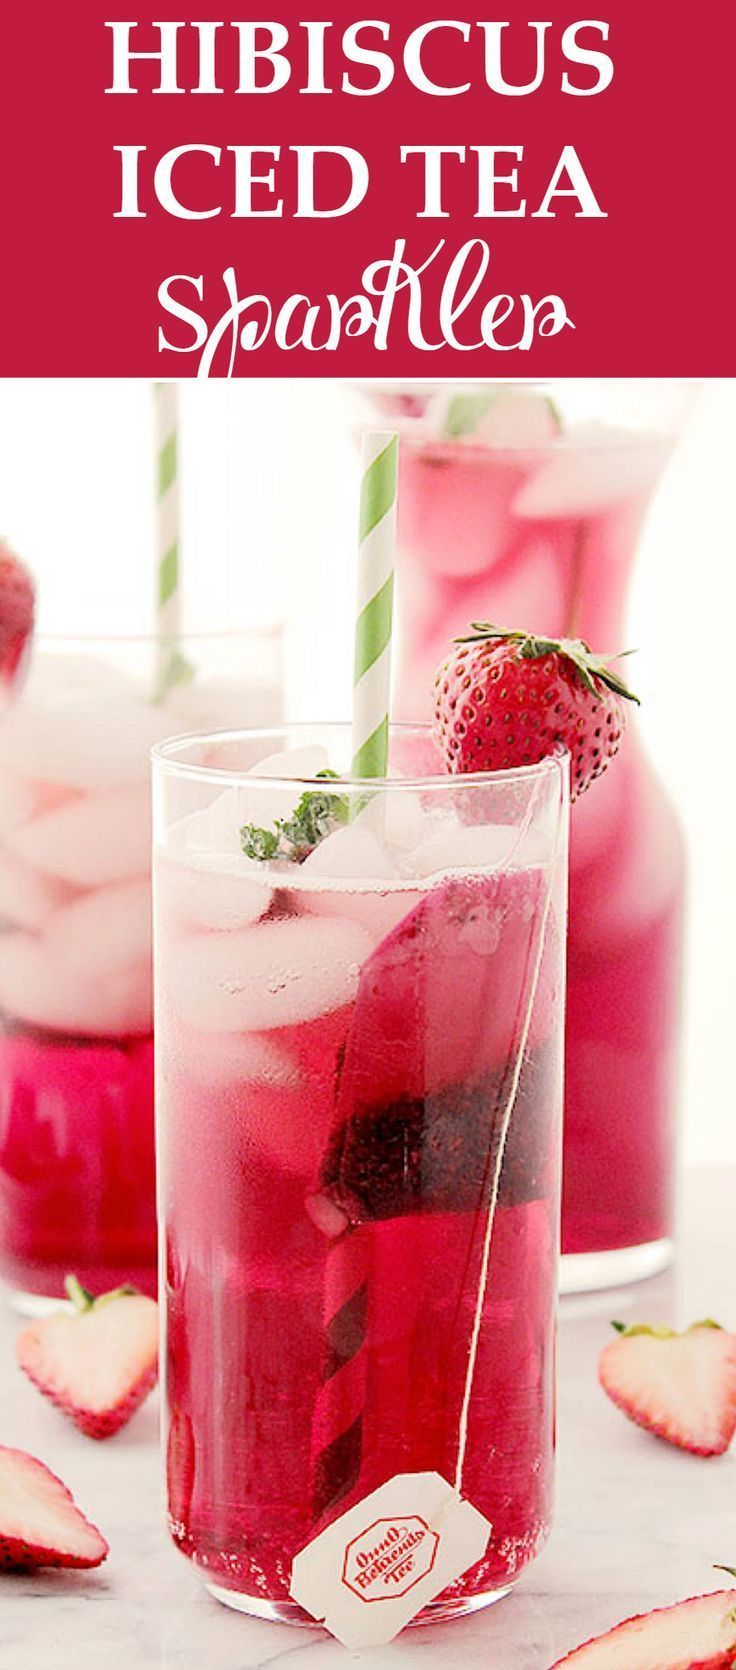 Hibiscus Iced Tea Sparkler Is A Very Refreshing And Delicious